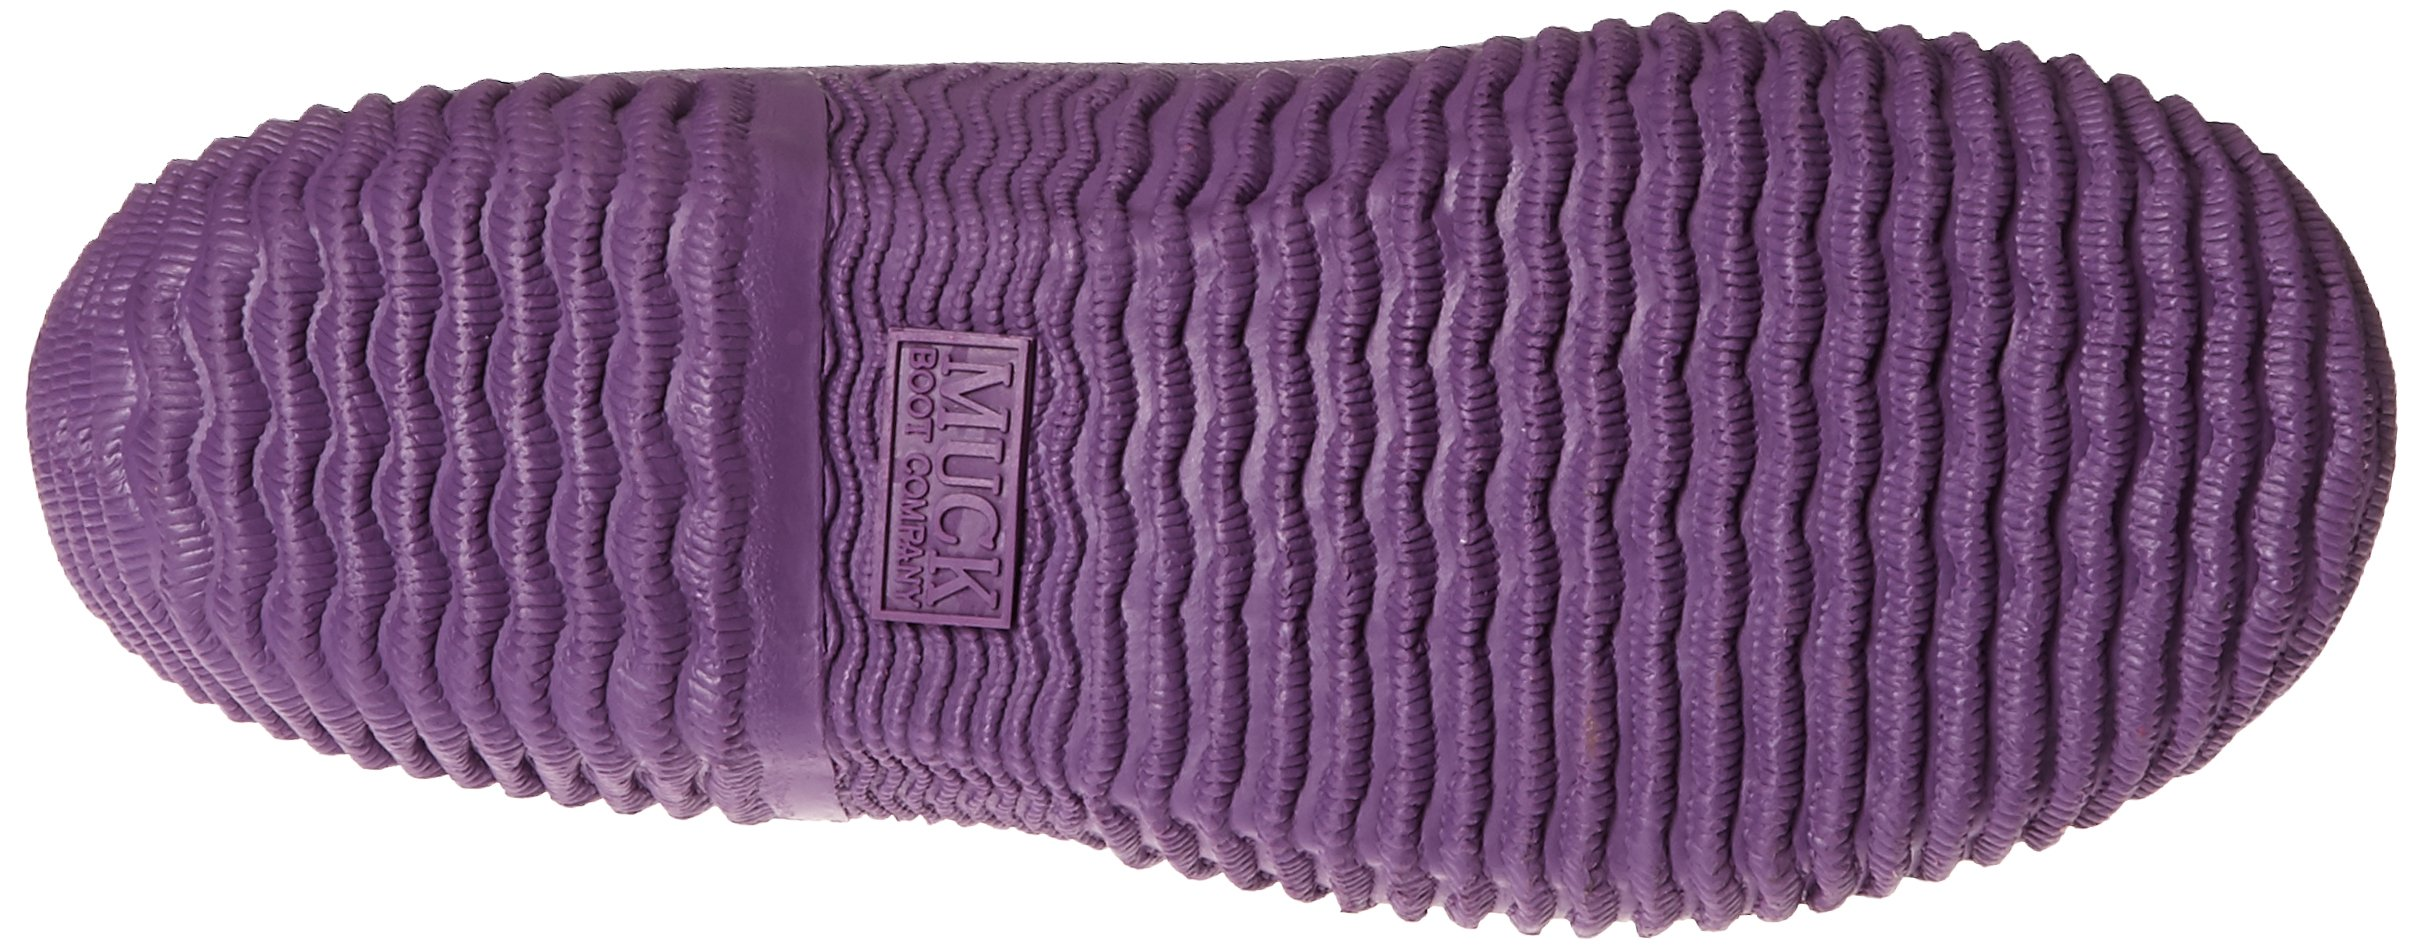 Muck Hale Multi-Season Kids' Rubber Boots by Muck Boot (Image #3)